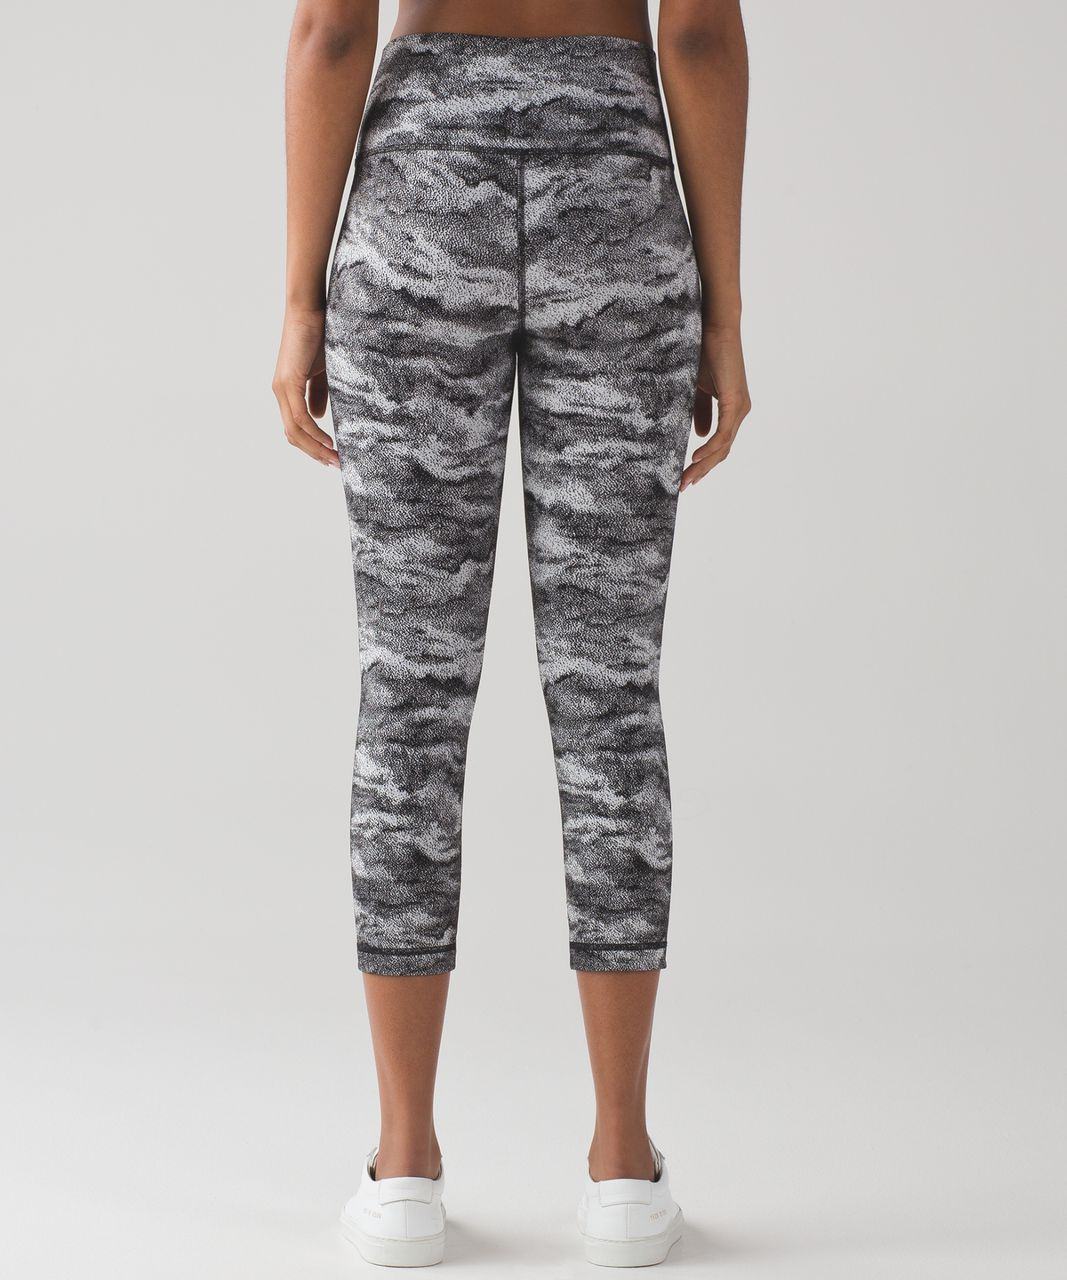 "Lululemon Wunder Under Crop (Hi-Rise) (21"") - Luon Hazy Days Black White"